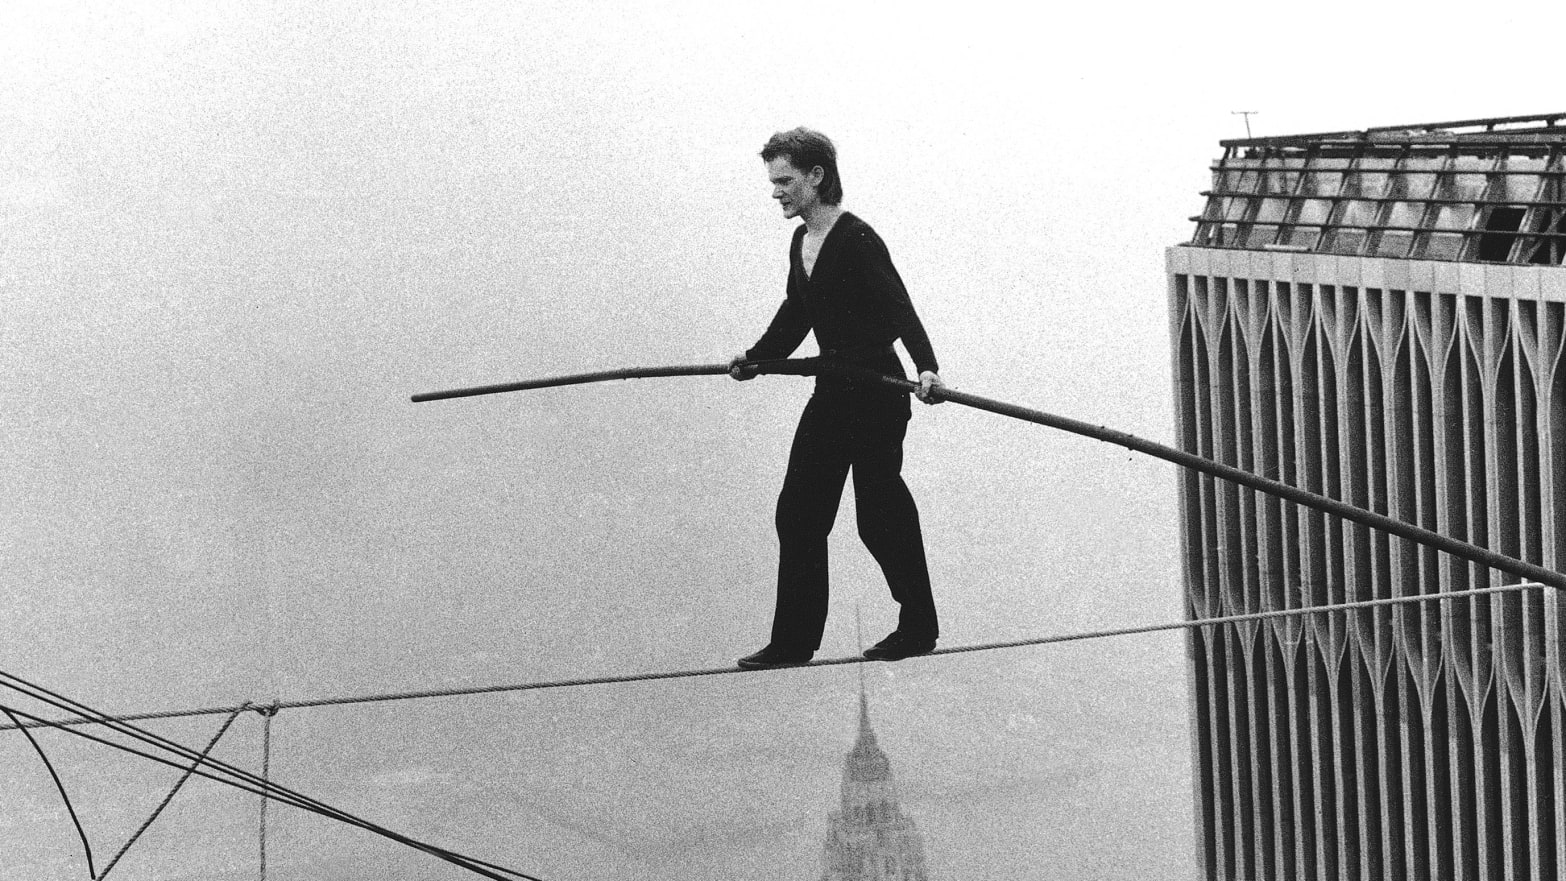 697e7273b8 Philippe Petit s Moment of Concern Walking the WTC Tightrope